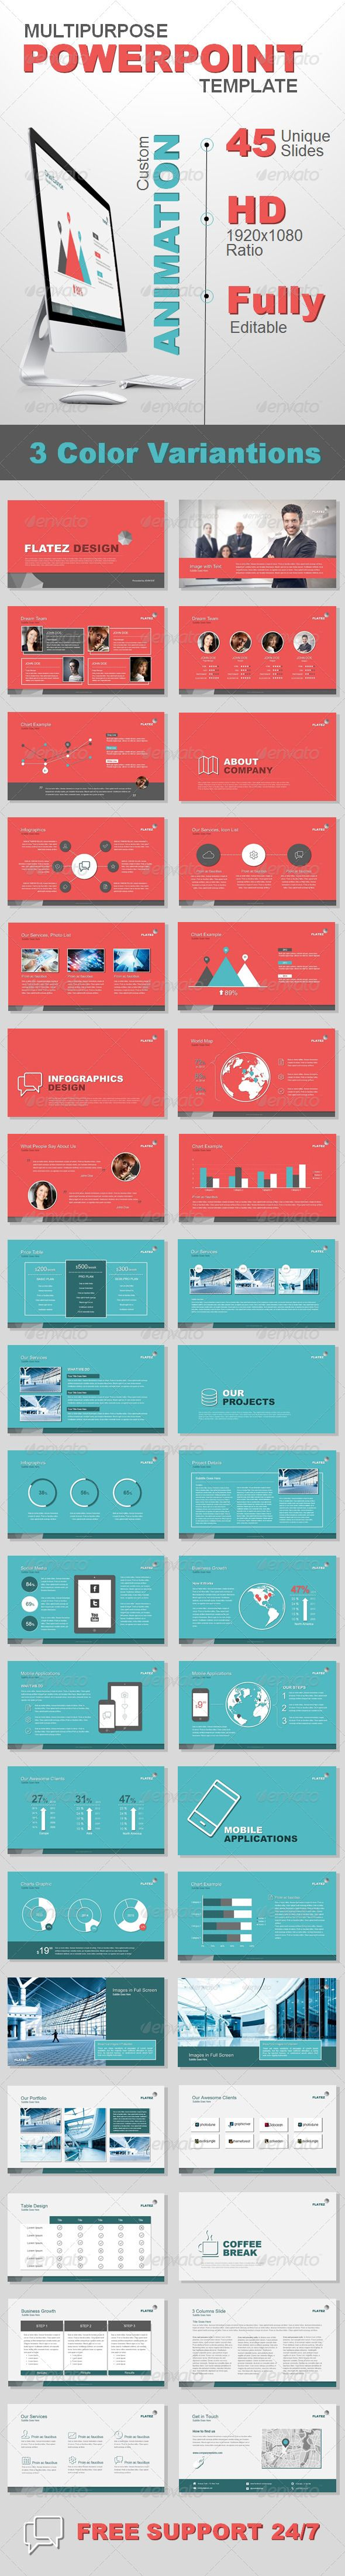 Multipurpose Business Template (Powerpoint Templates) #Powerpoint #Powerpoint_Template #Presentation